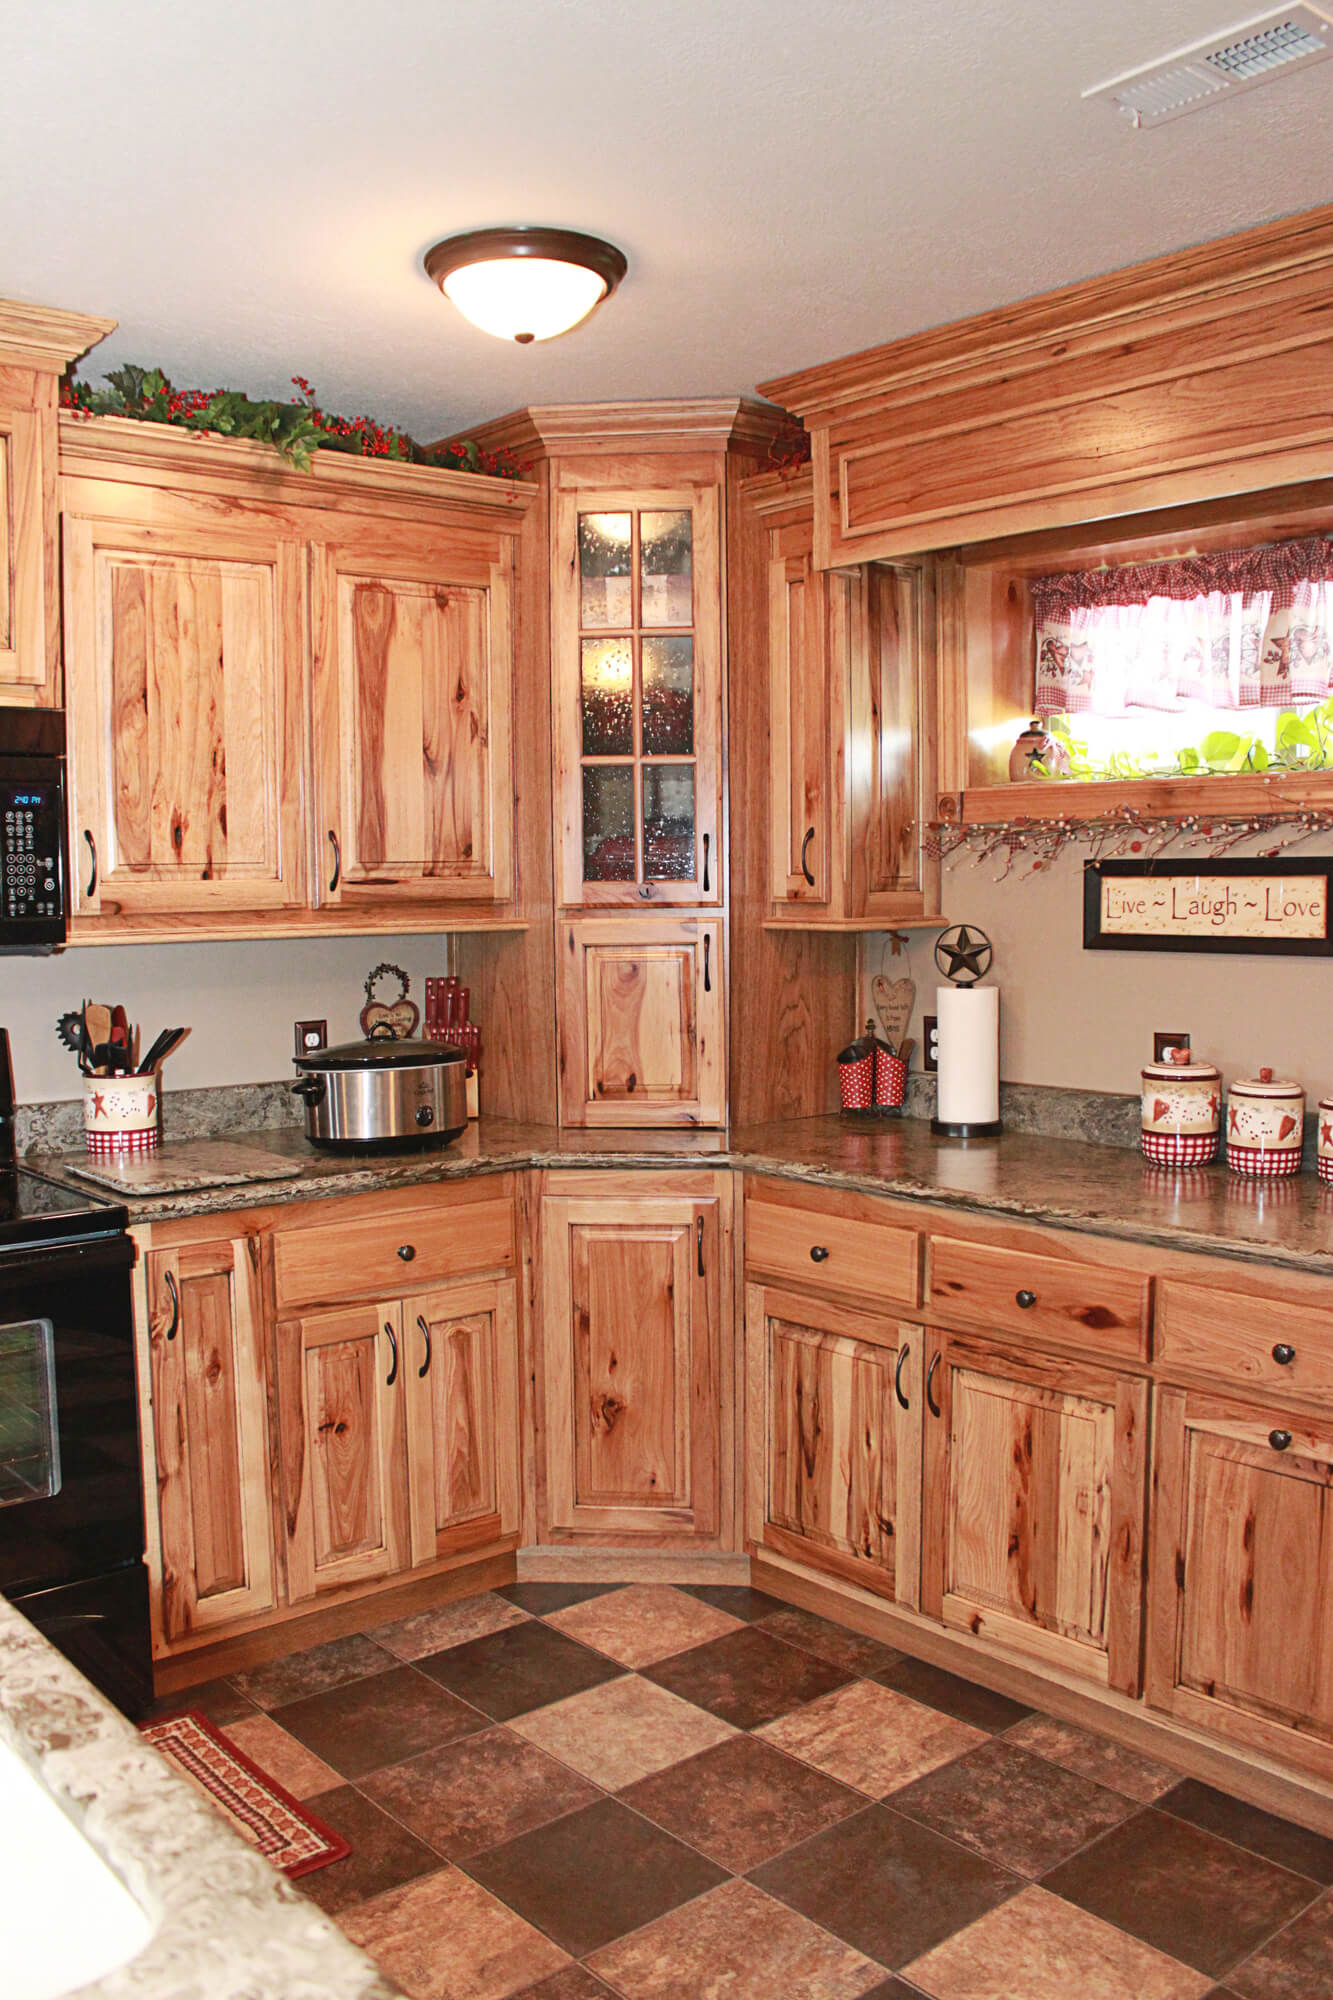 The cabinets plus rustic hickory kitchen cabinets for Kitchen cabinets ideas images